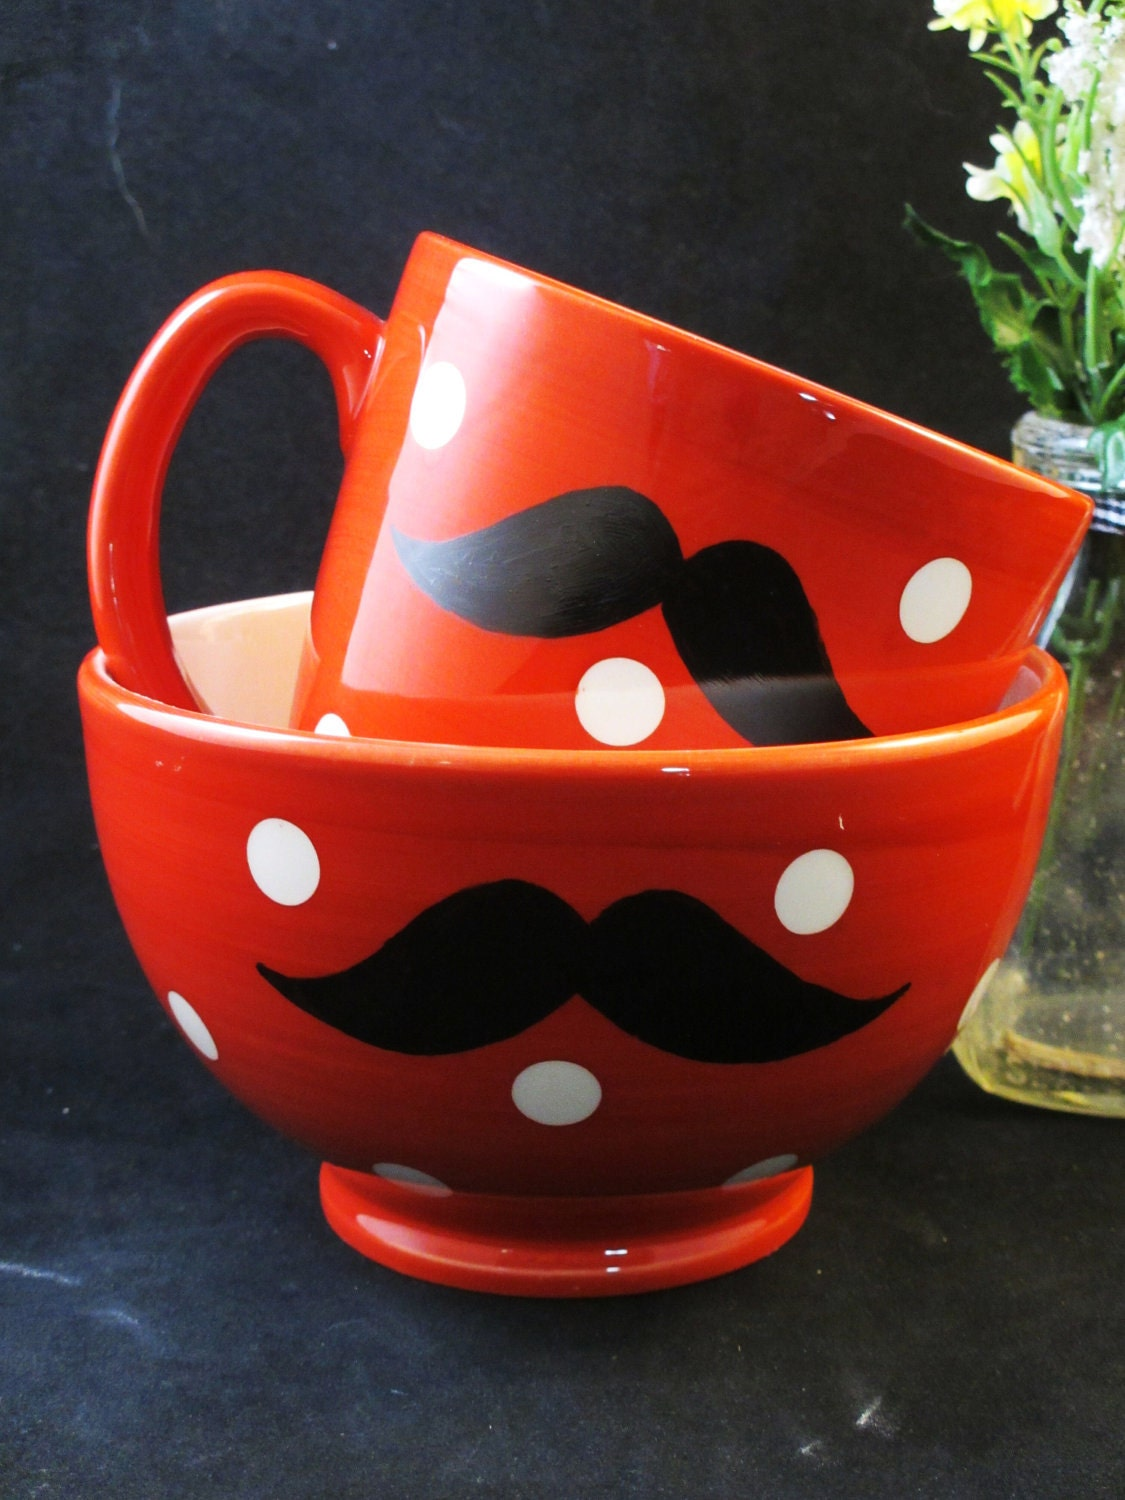 Kiln Fired Good Morning Mustache Mug and Bowl Breakfast Set Red Polka Dots- Handpainted - kaoriglass